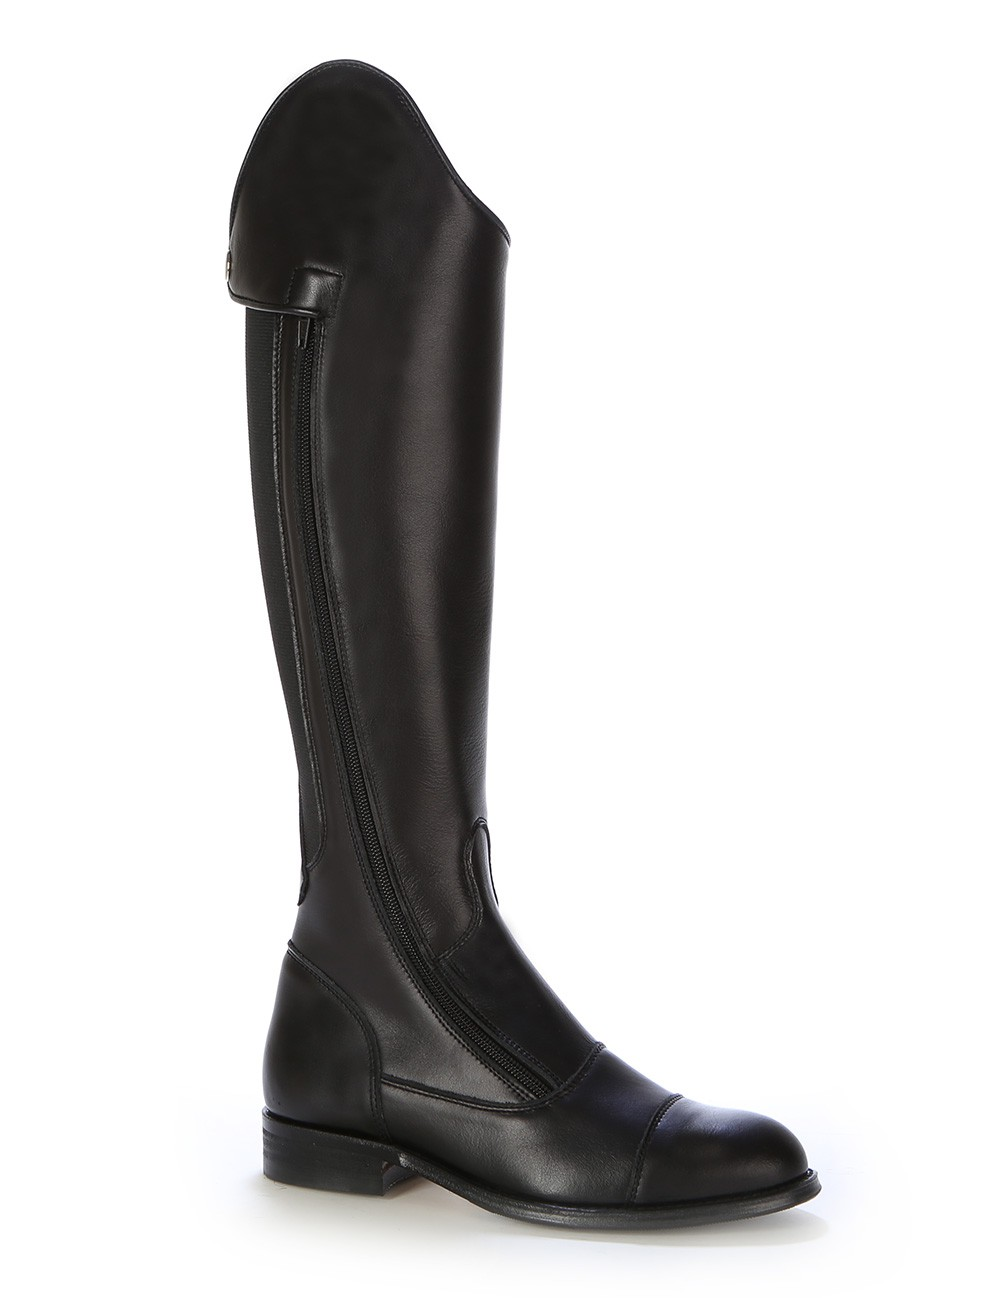 Made To Measure Black Leather Dressage Boot For Horse Riding Black Leather Horse Riding Boots For Men And Women